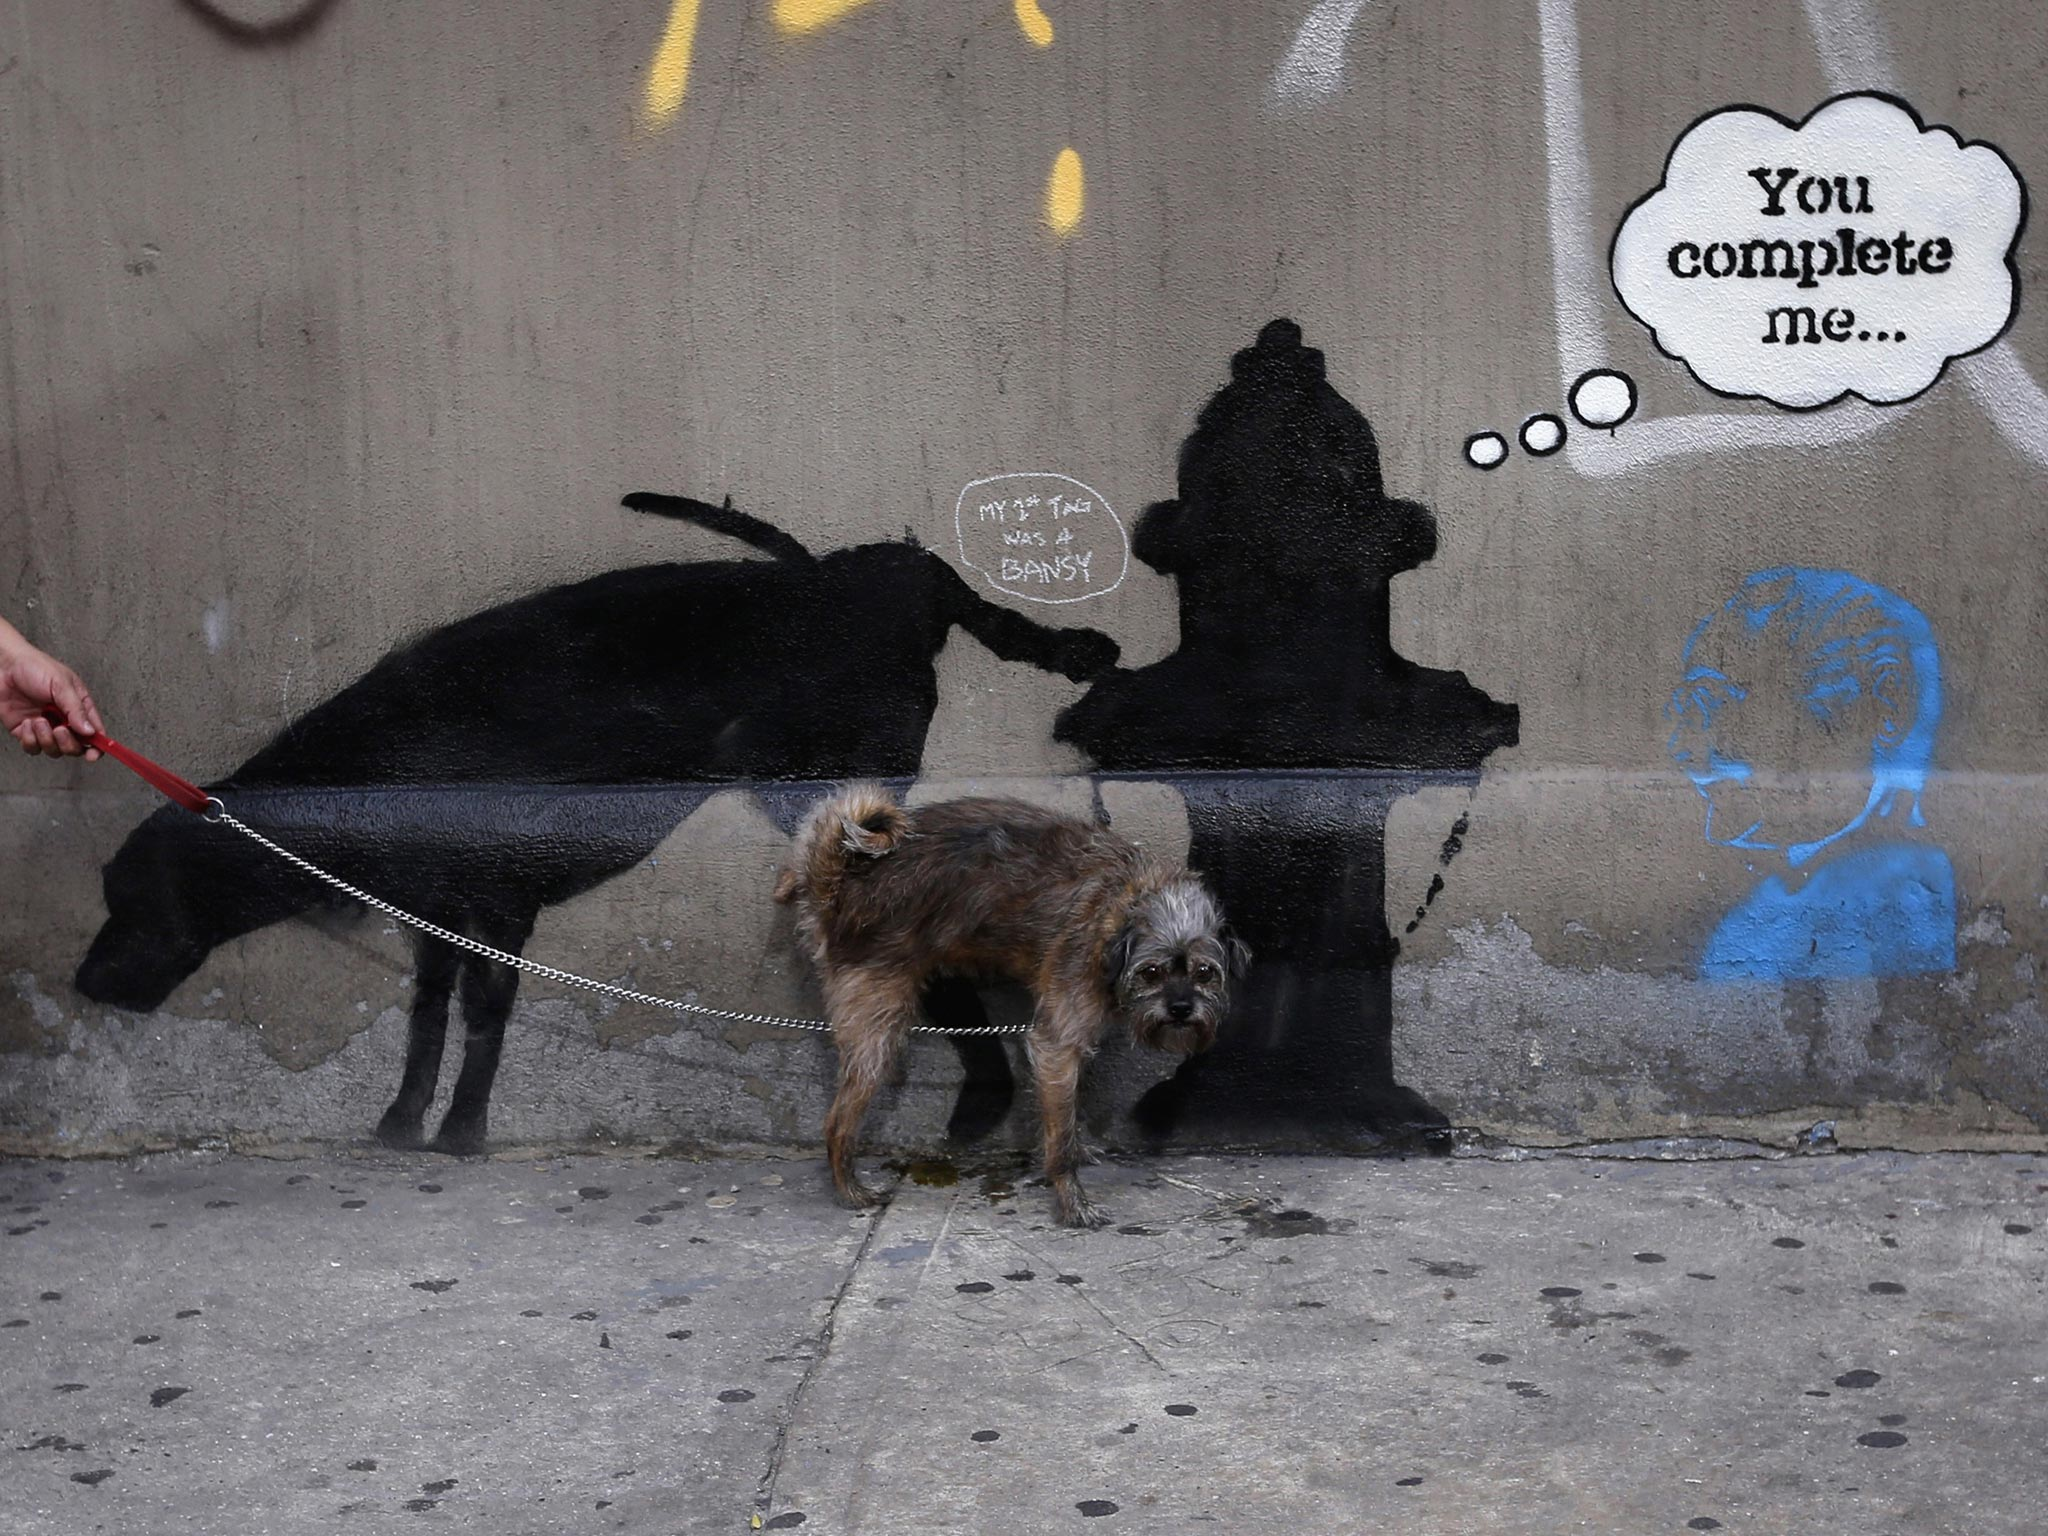 Banksy defaced: Graffiti artist's New York project ruined by